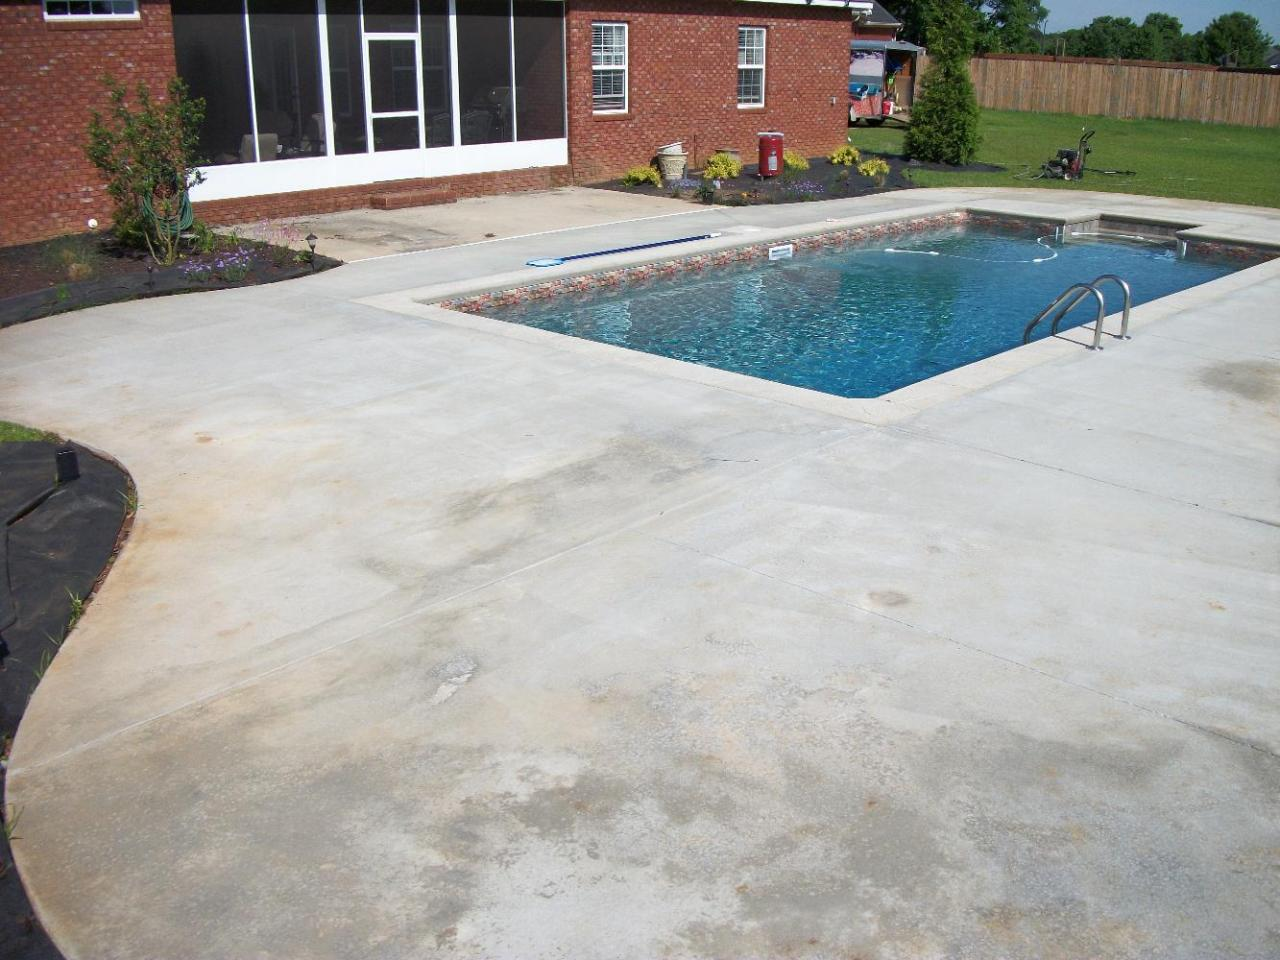 southern concrete designs llc - photo gallery 3